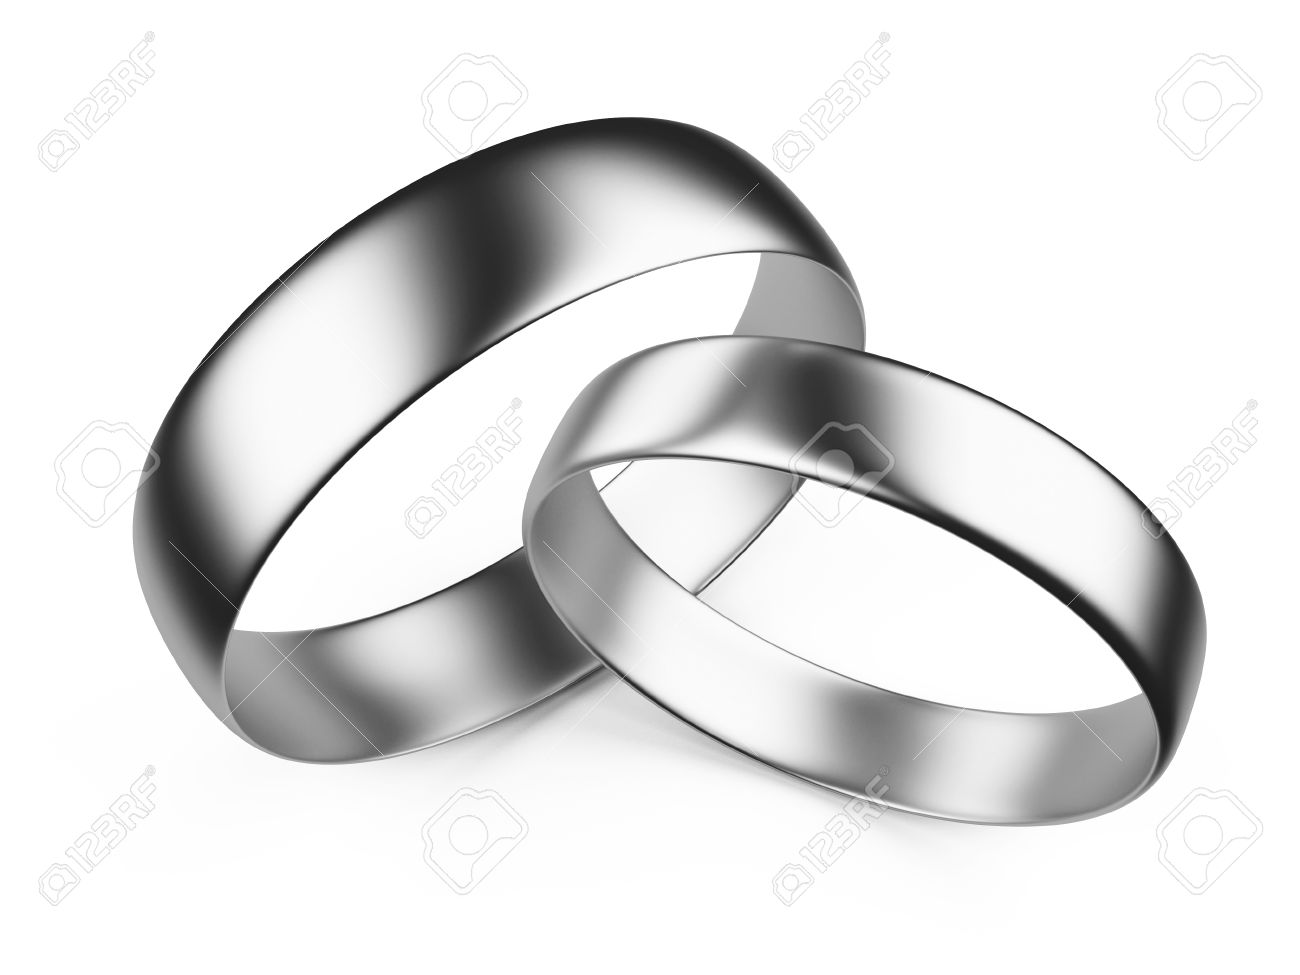 Silver Wedding Rings Isolated On White Background 3d Image Stock Photo